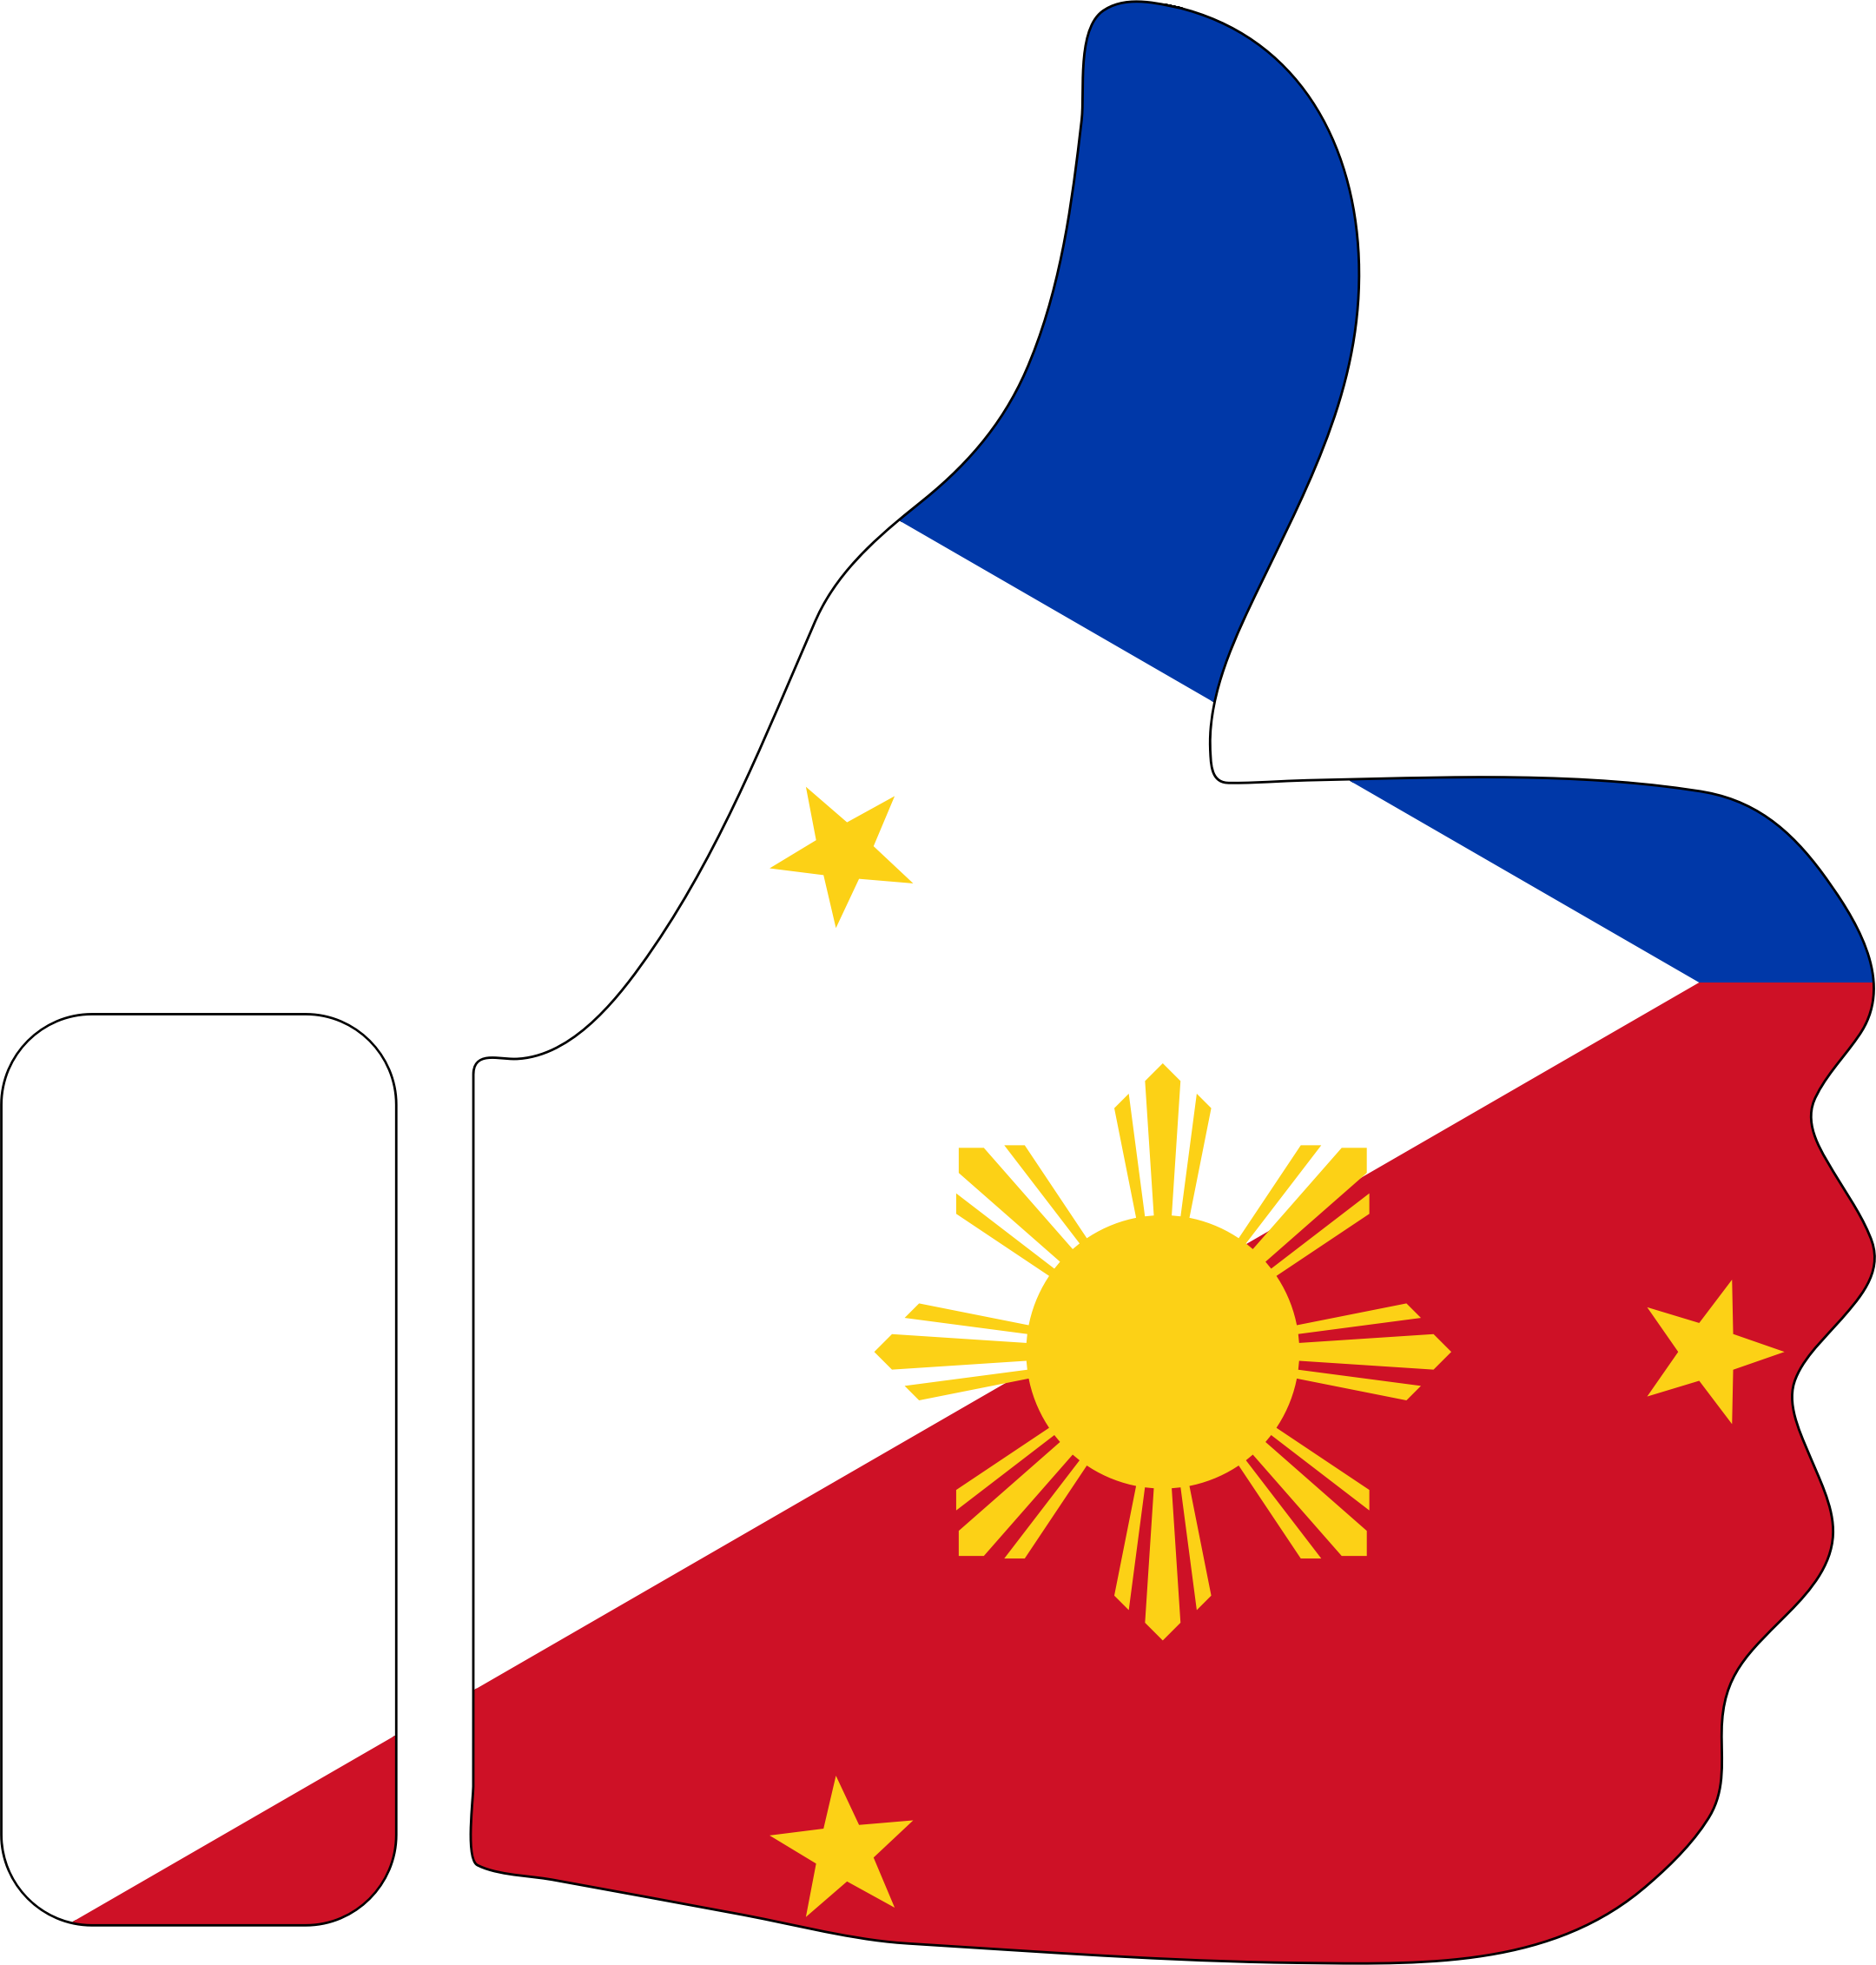 Thumbs Up Philippines With Stroke by GDJ